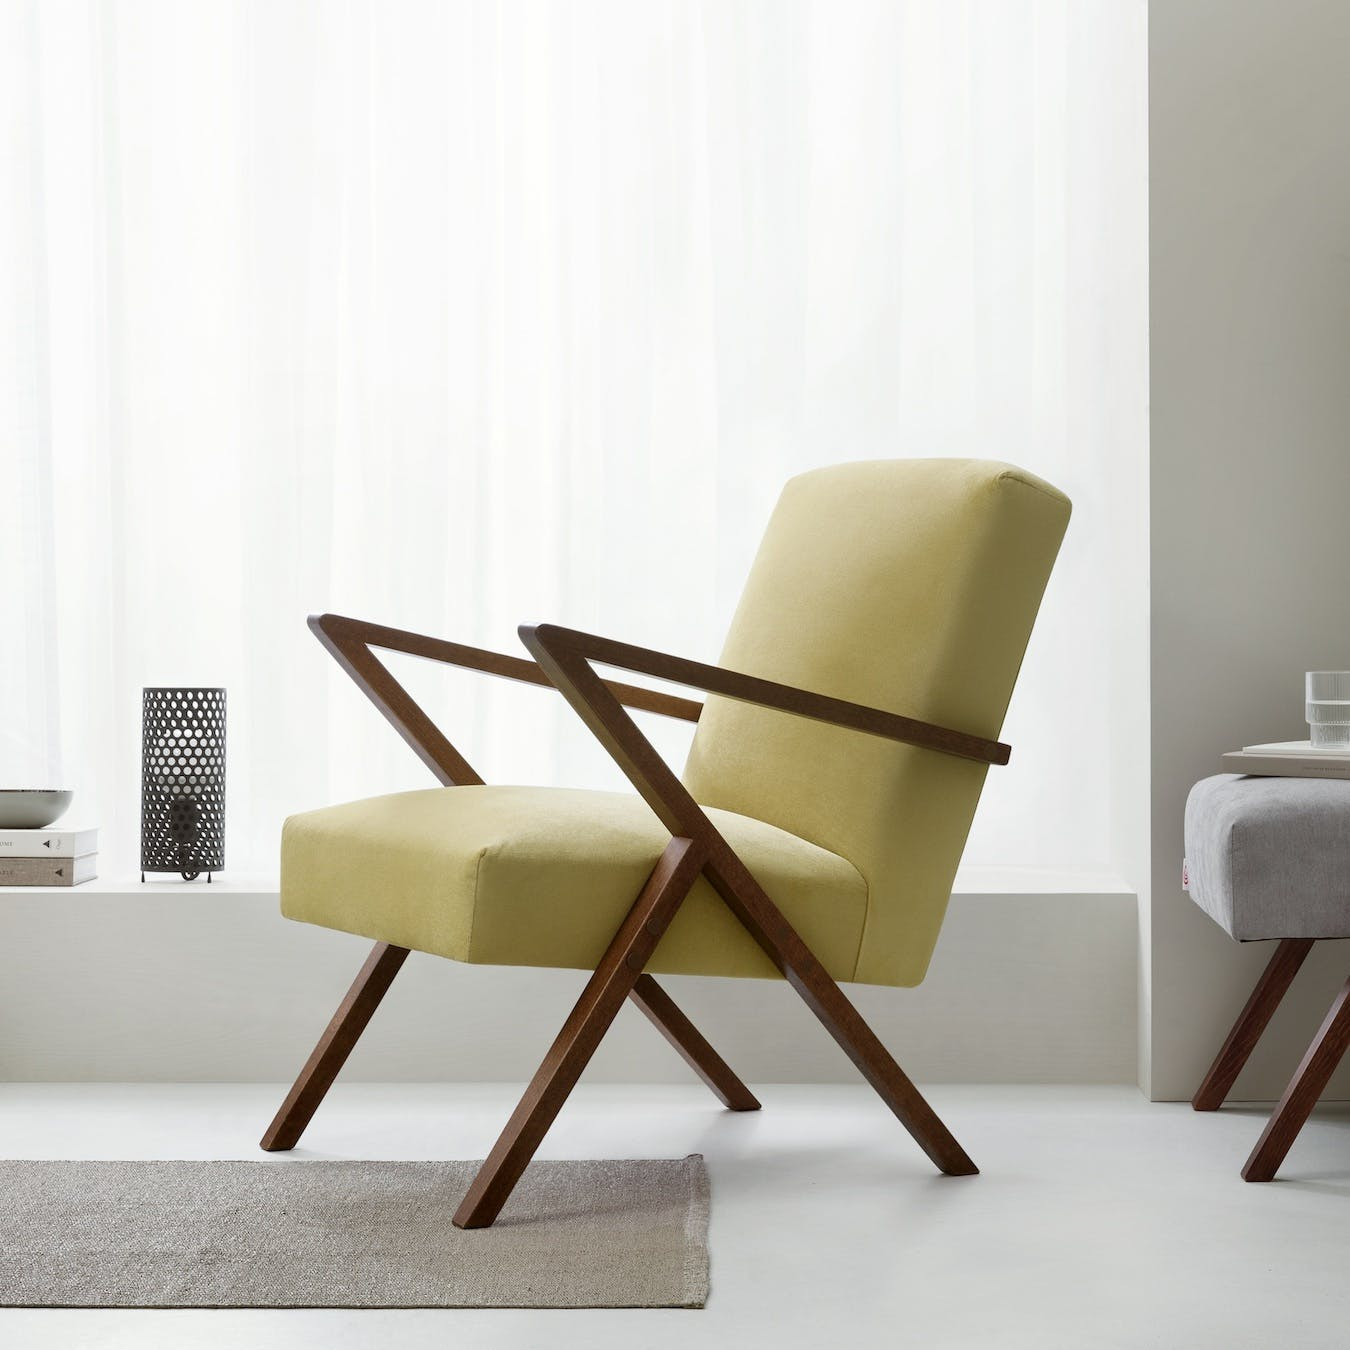 Retrostar Chair - Velvet Line in Lemon Yellow